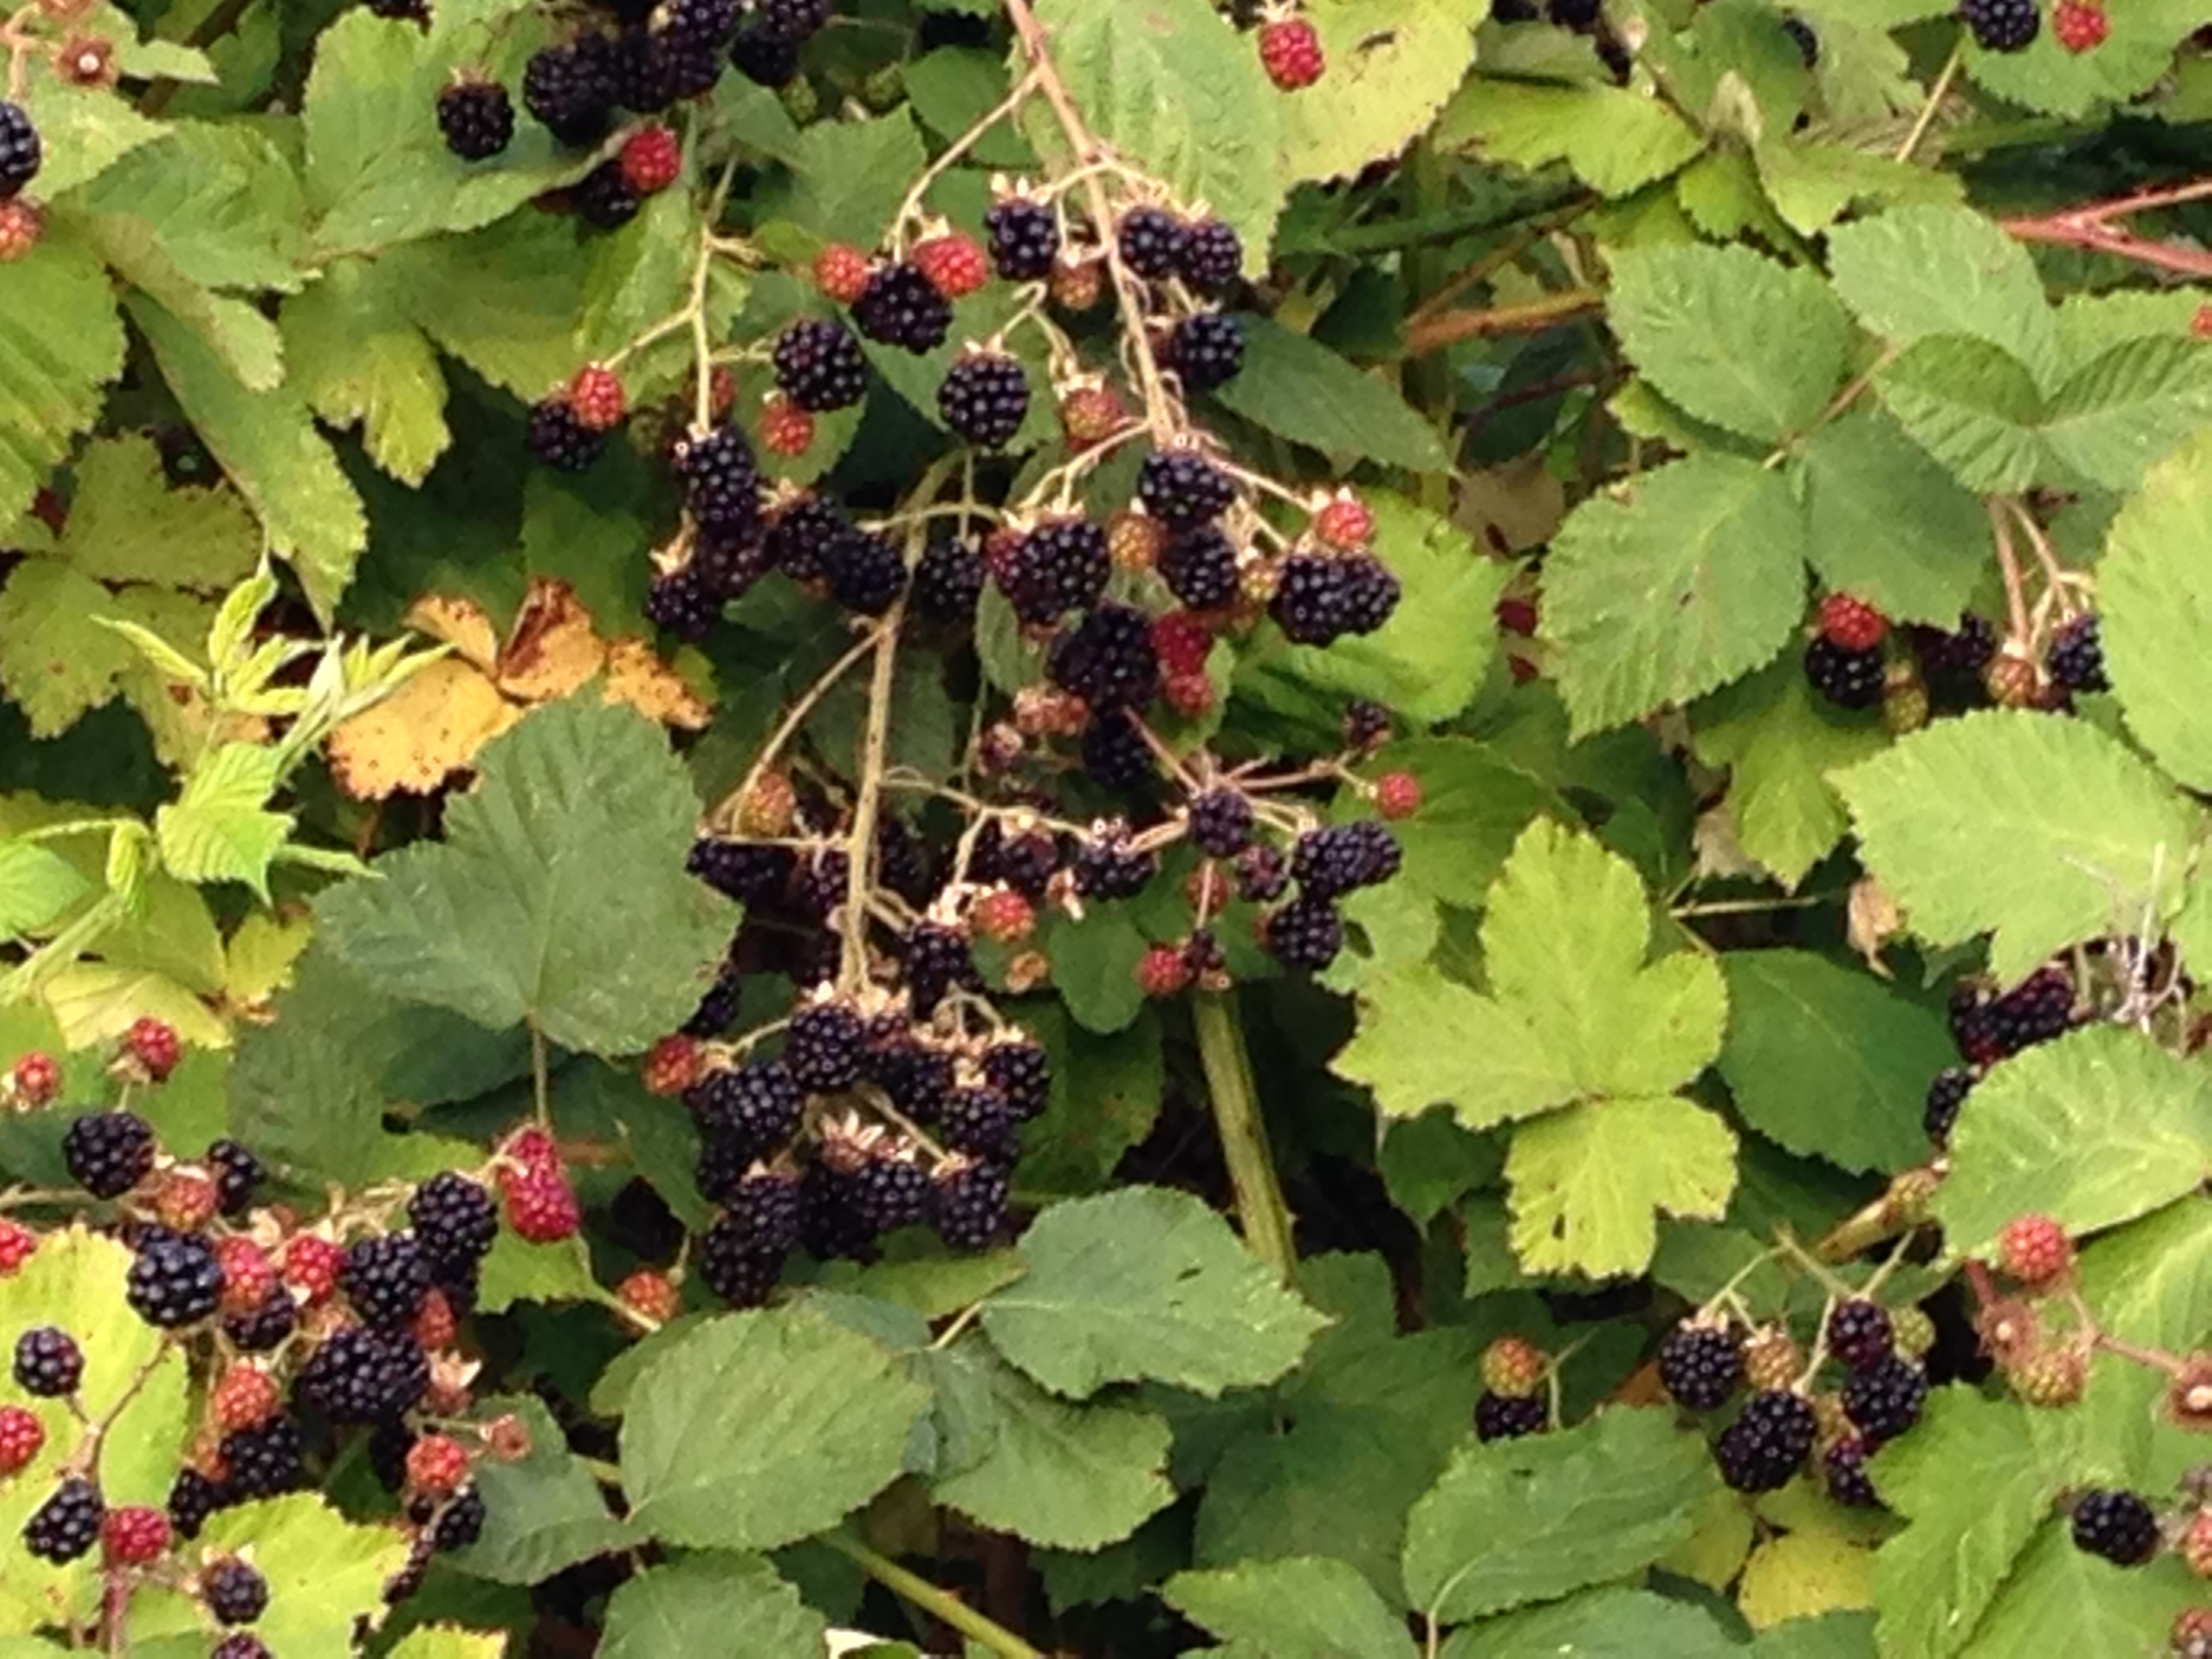 wild blackberries in the Northwest U.S.